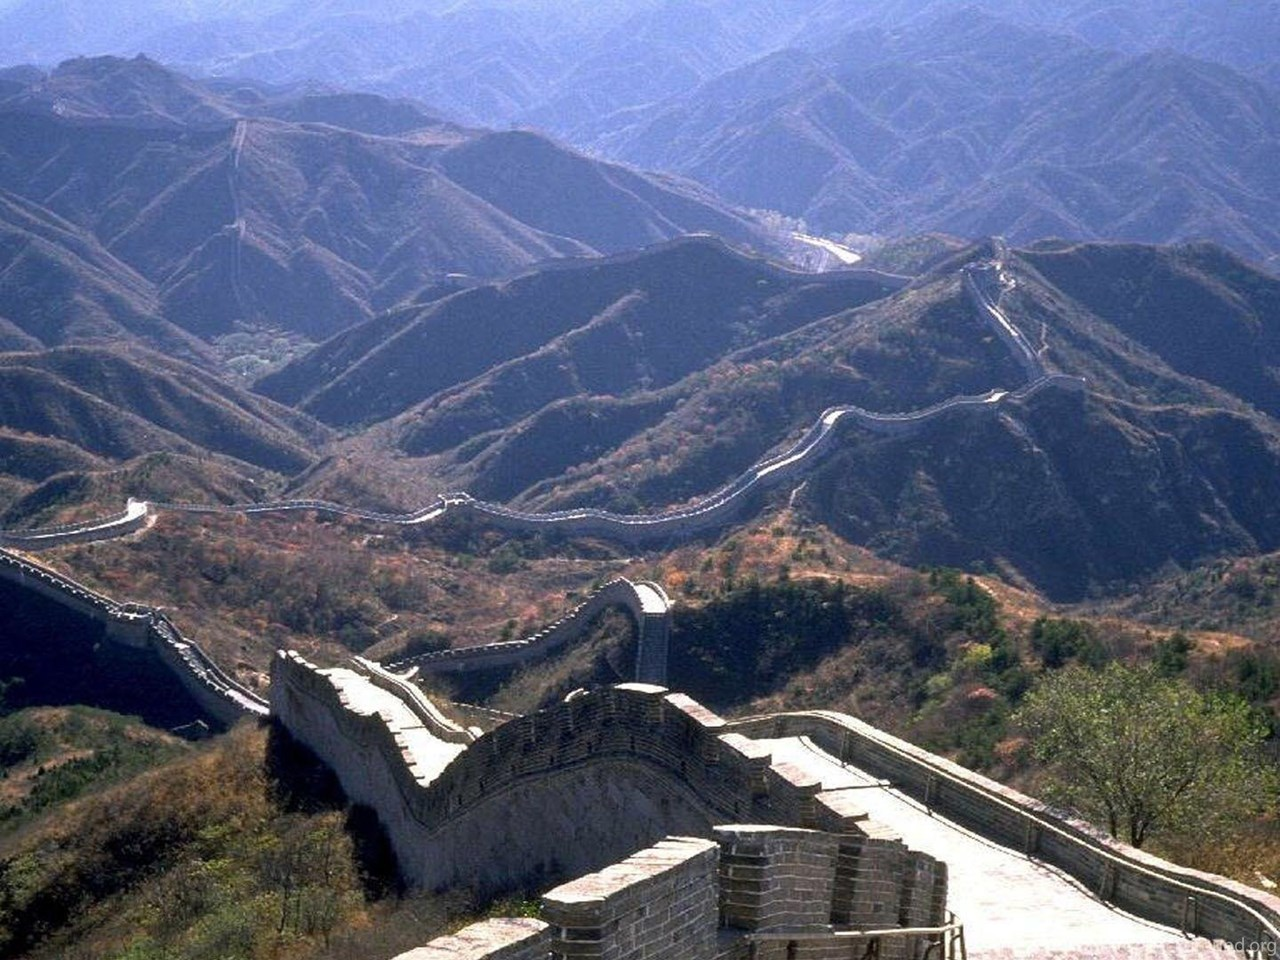 essay about china wall The wall provided the some of the warring states of that time a protection from the other states over the years the wall had been constructed and broken many lives were lost in the construction but it turned out to be a spectacular accomplishment the great wall of china began construction in 221.